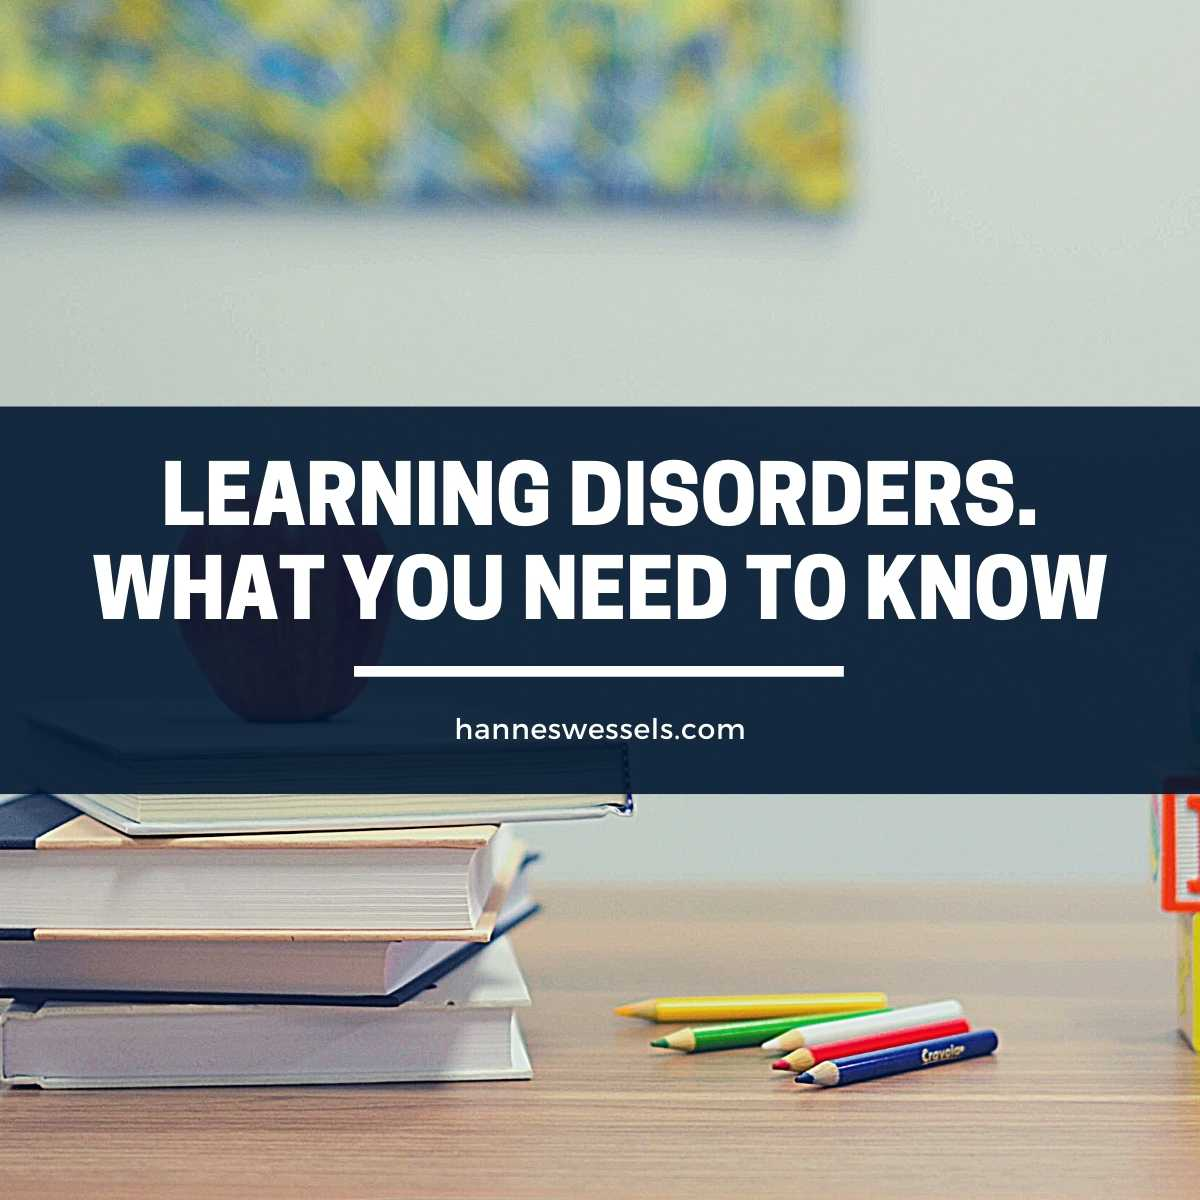 Learning Disorders. What you need to know